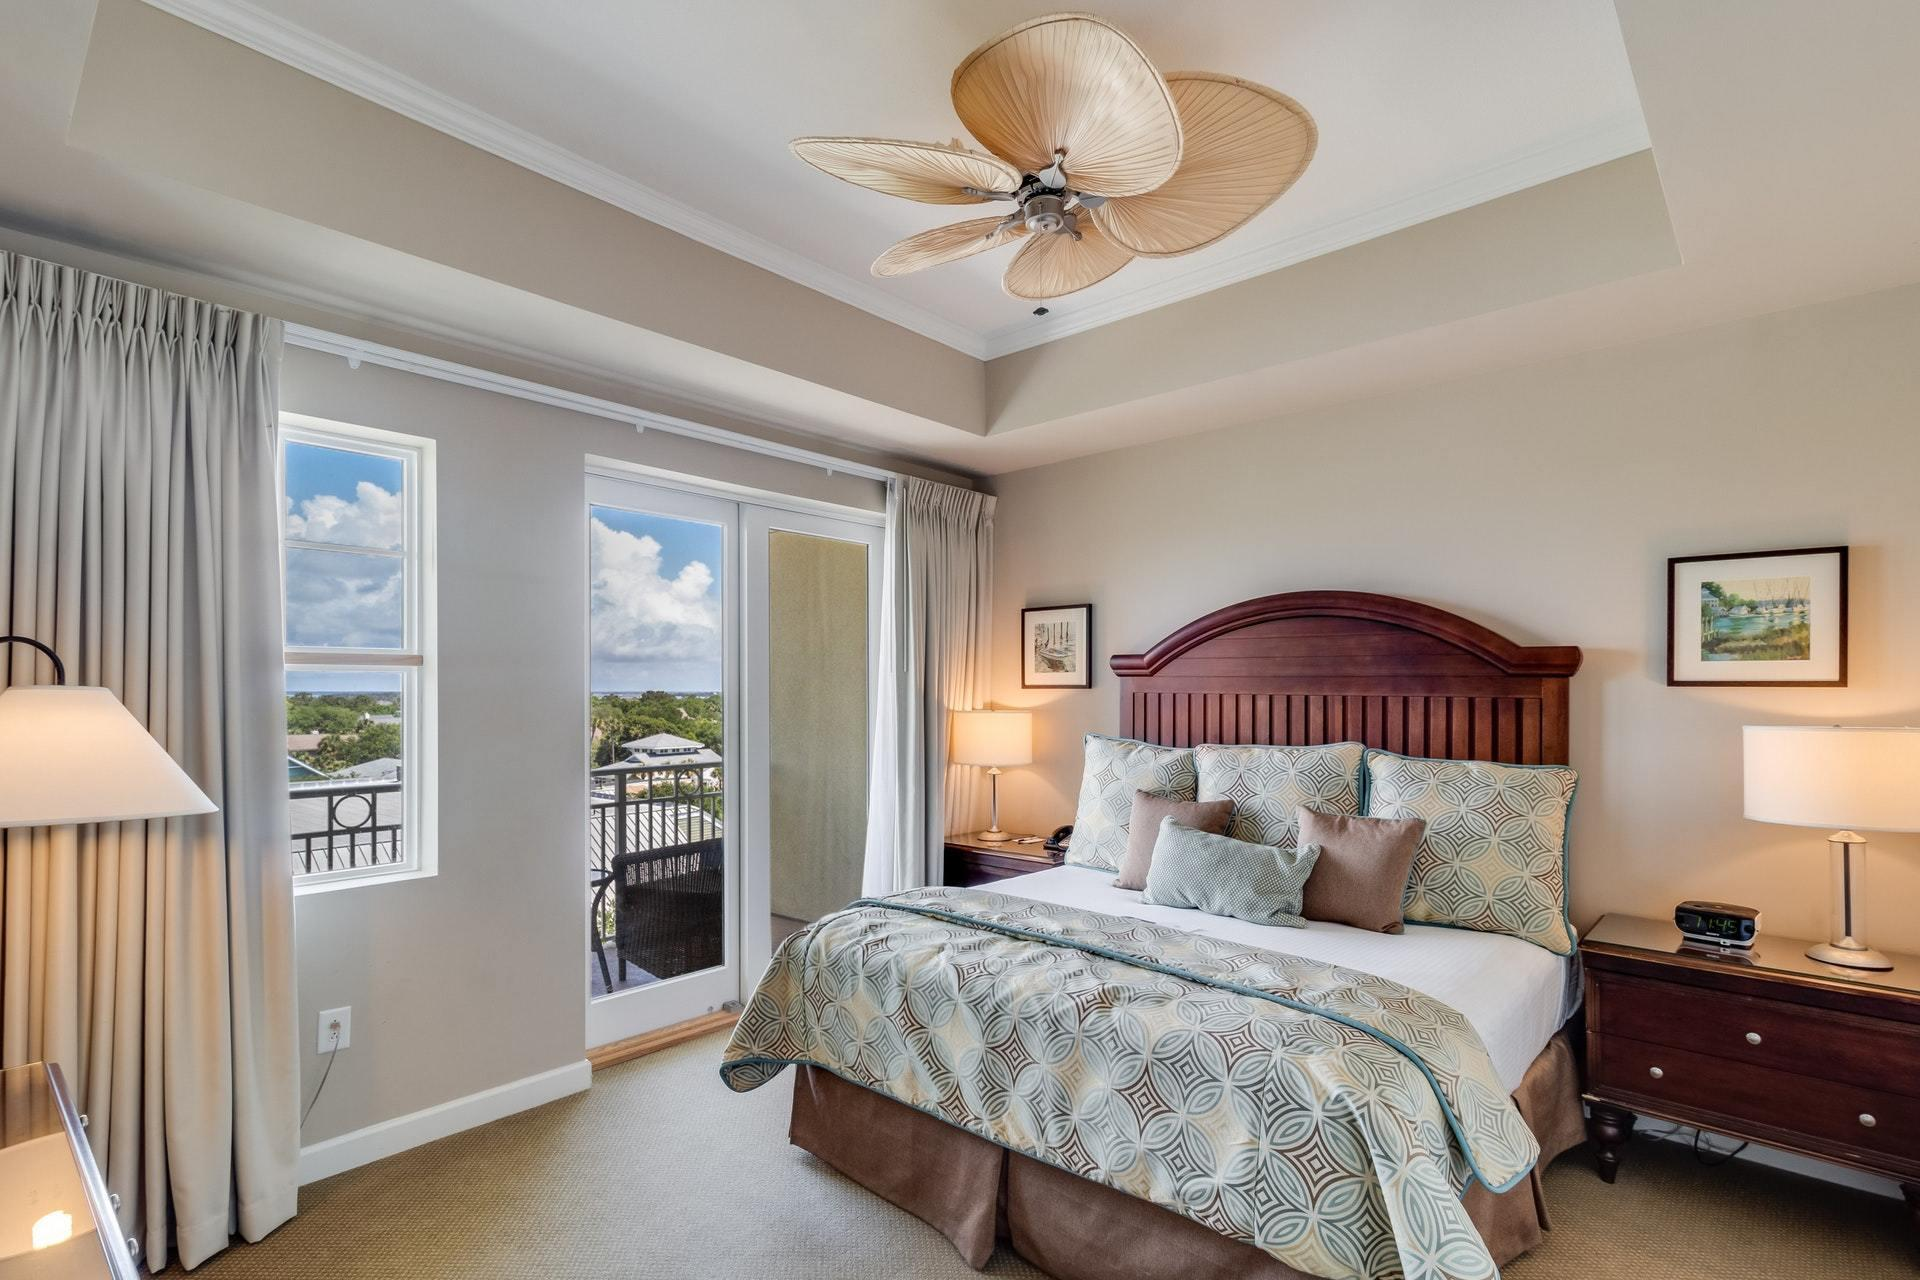 Wild Dunes Homes For Sale - 505/507 Village At Wild Dunes, Isle of Palms, SC - 1